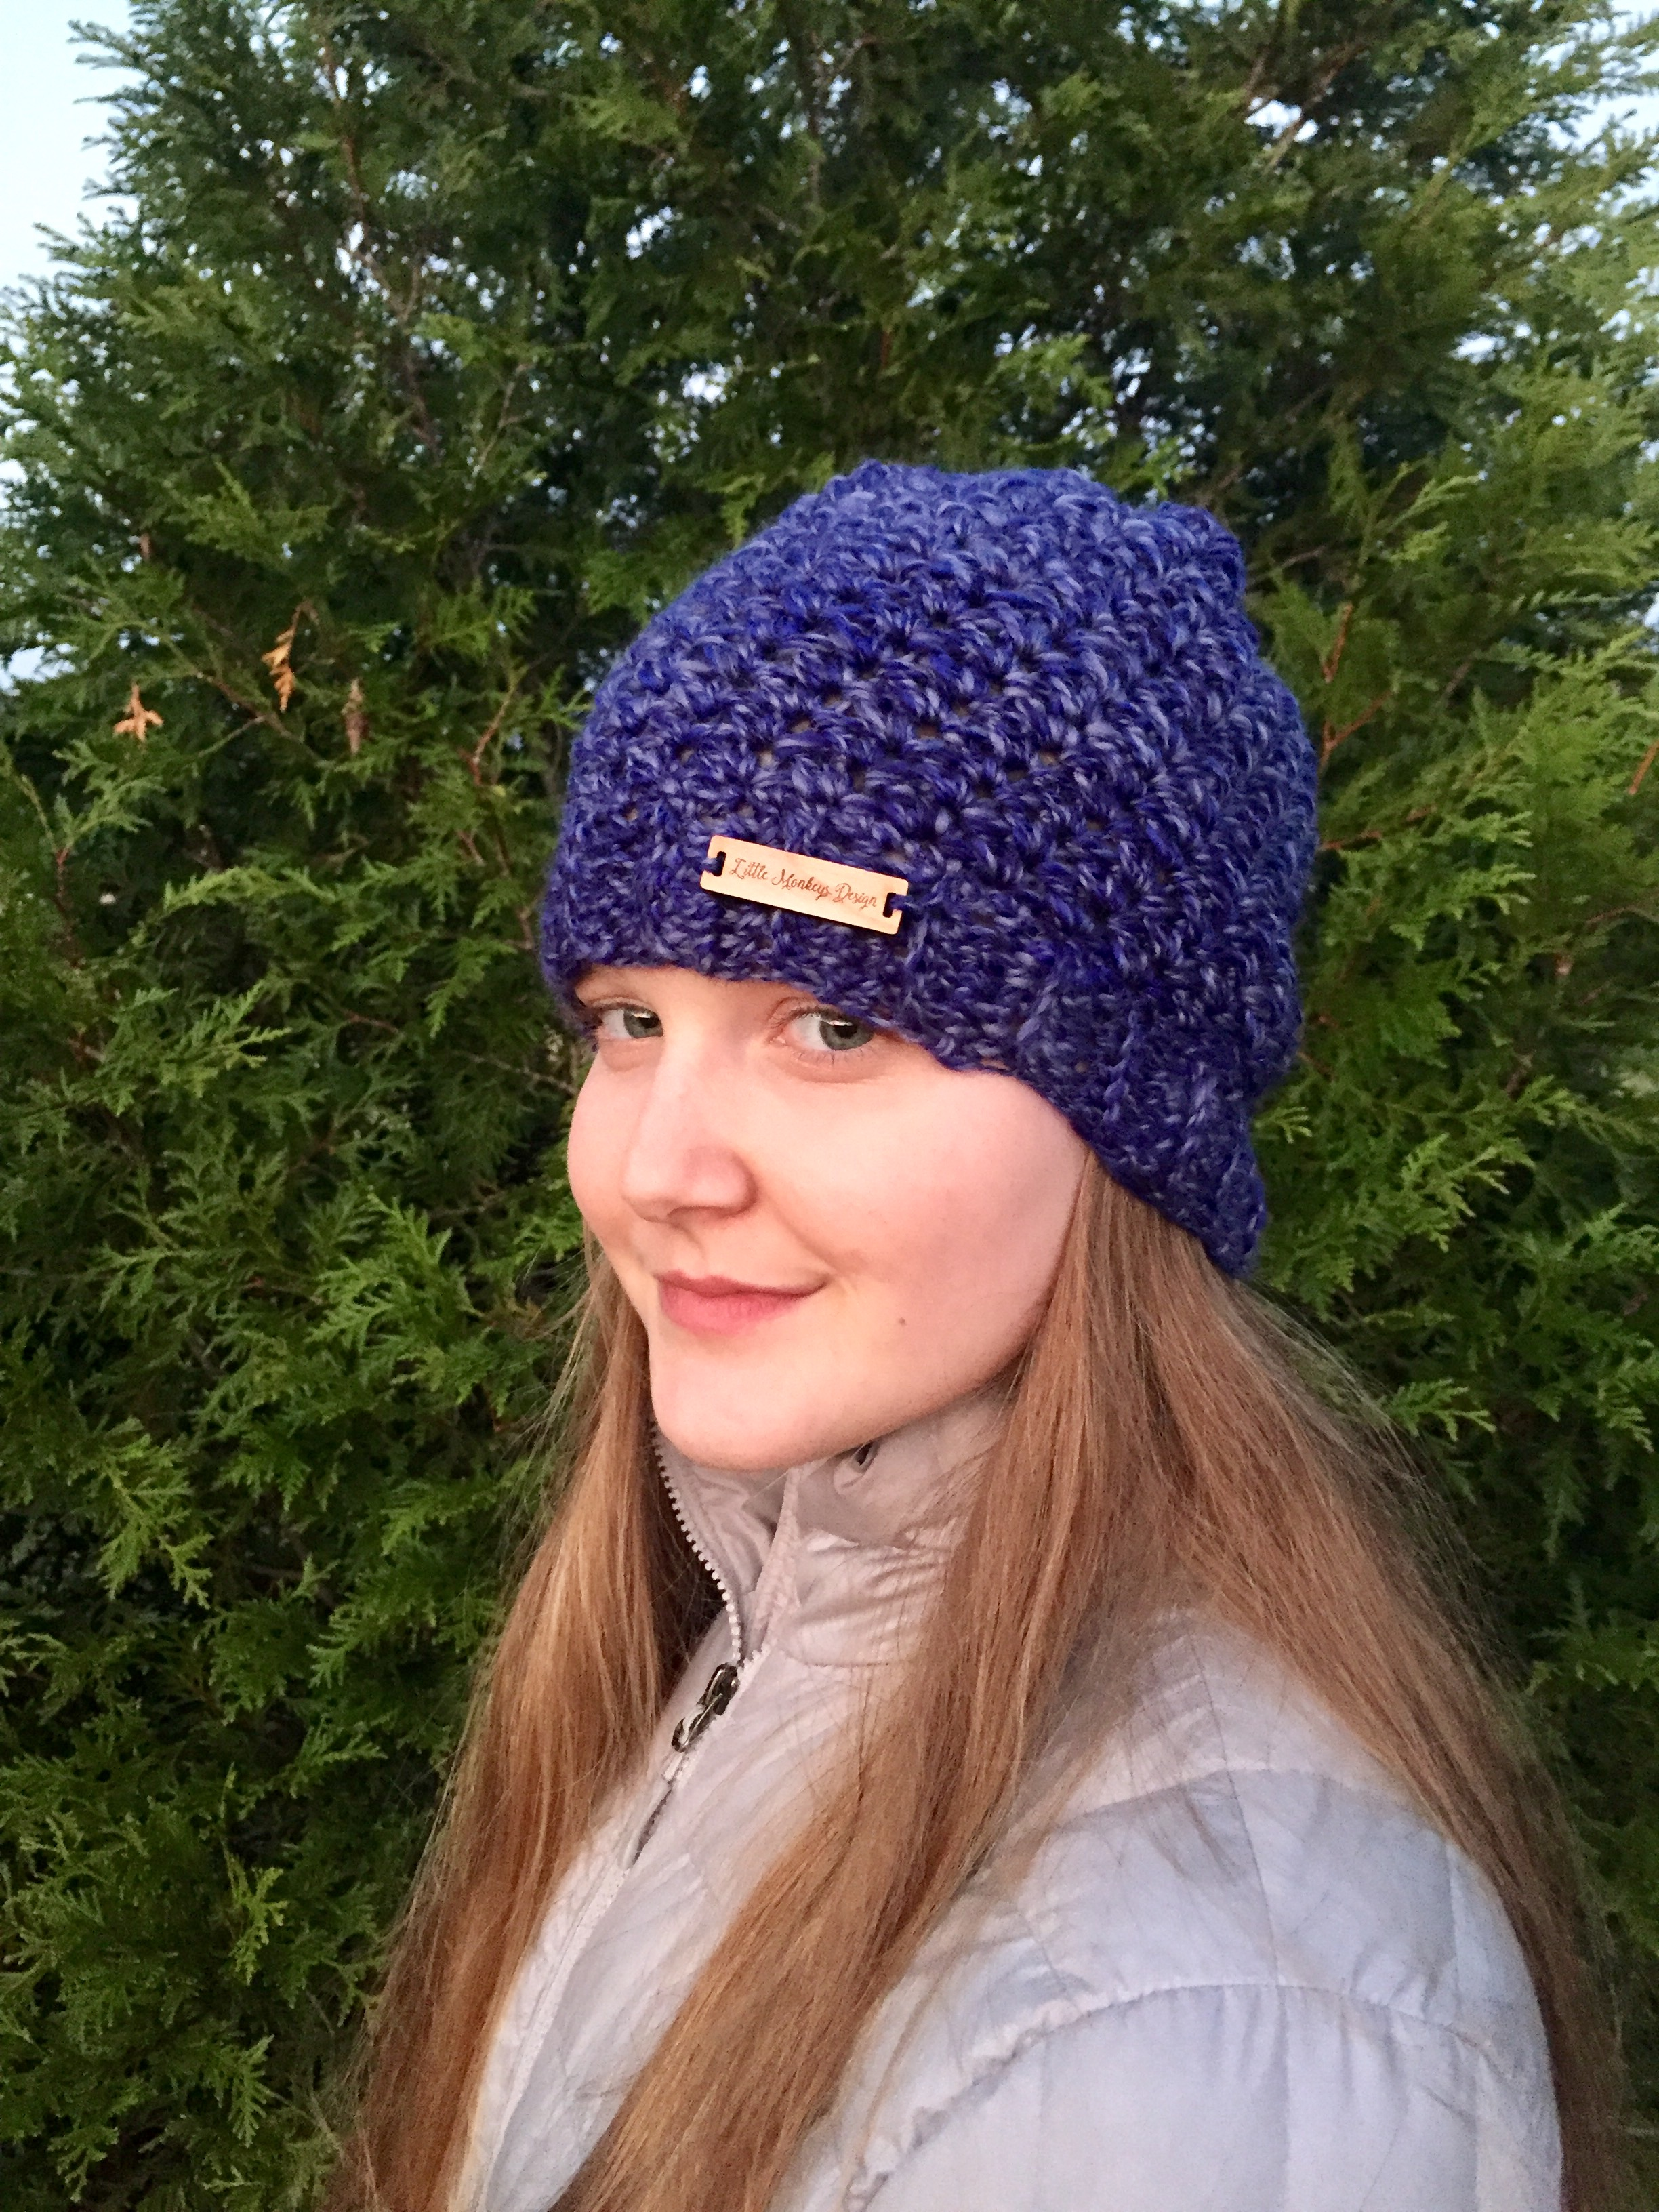 let-it-snow-hat-by-little-monkeys-design-in-blue-merino-wool